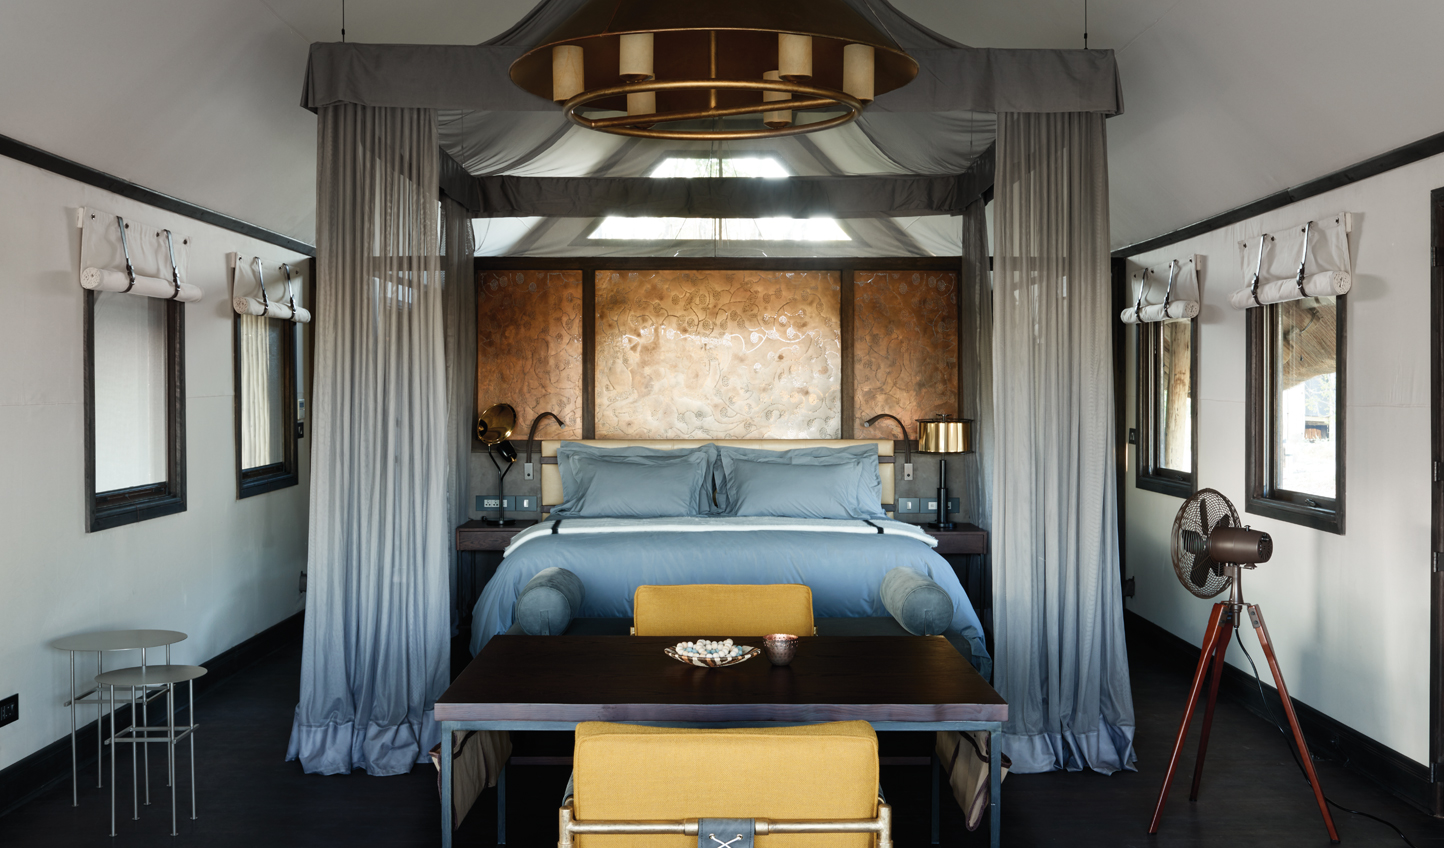 Oversized beds take centre-stage